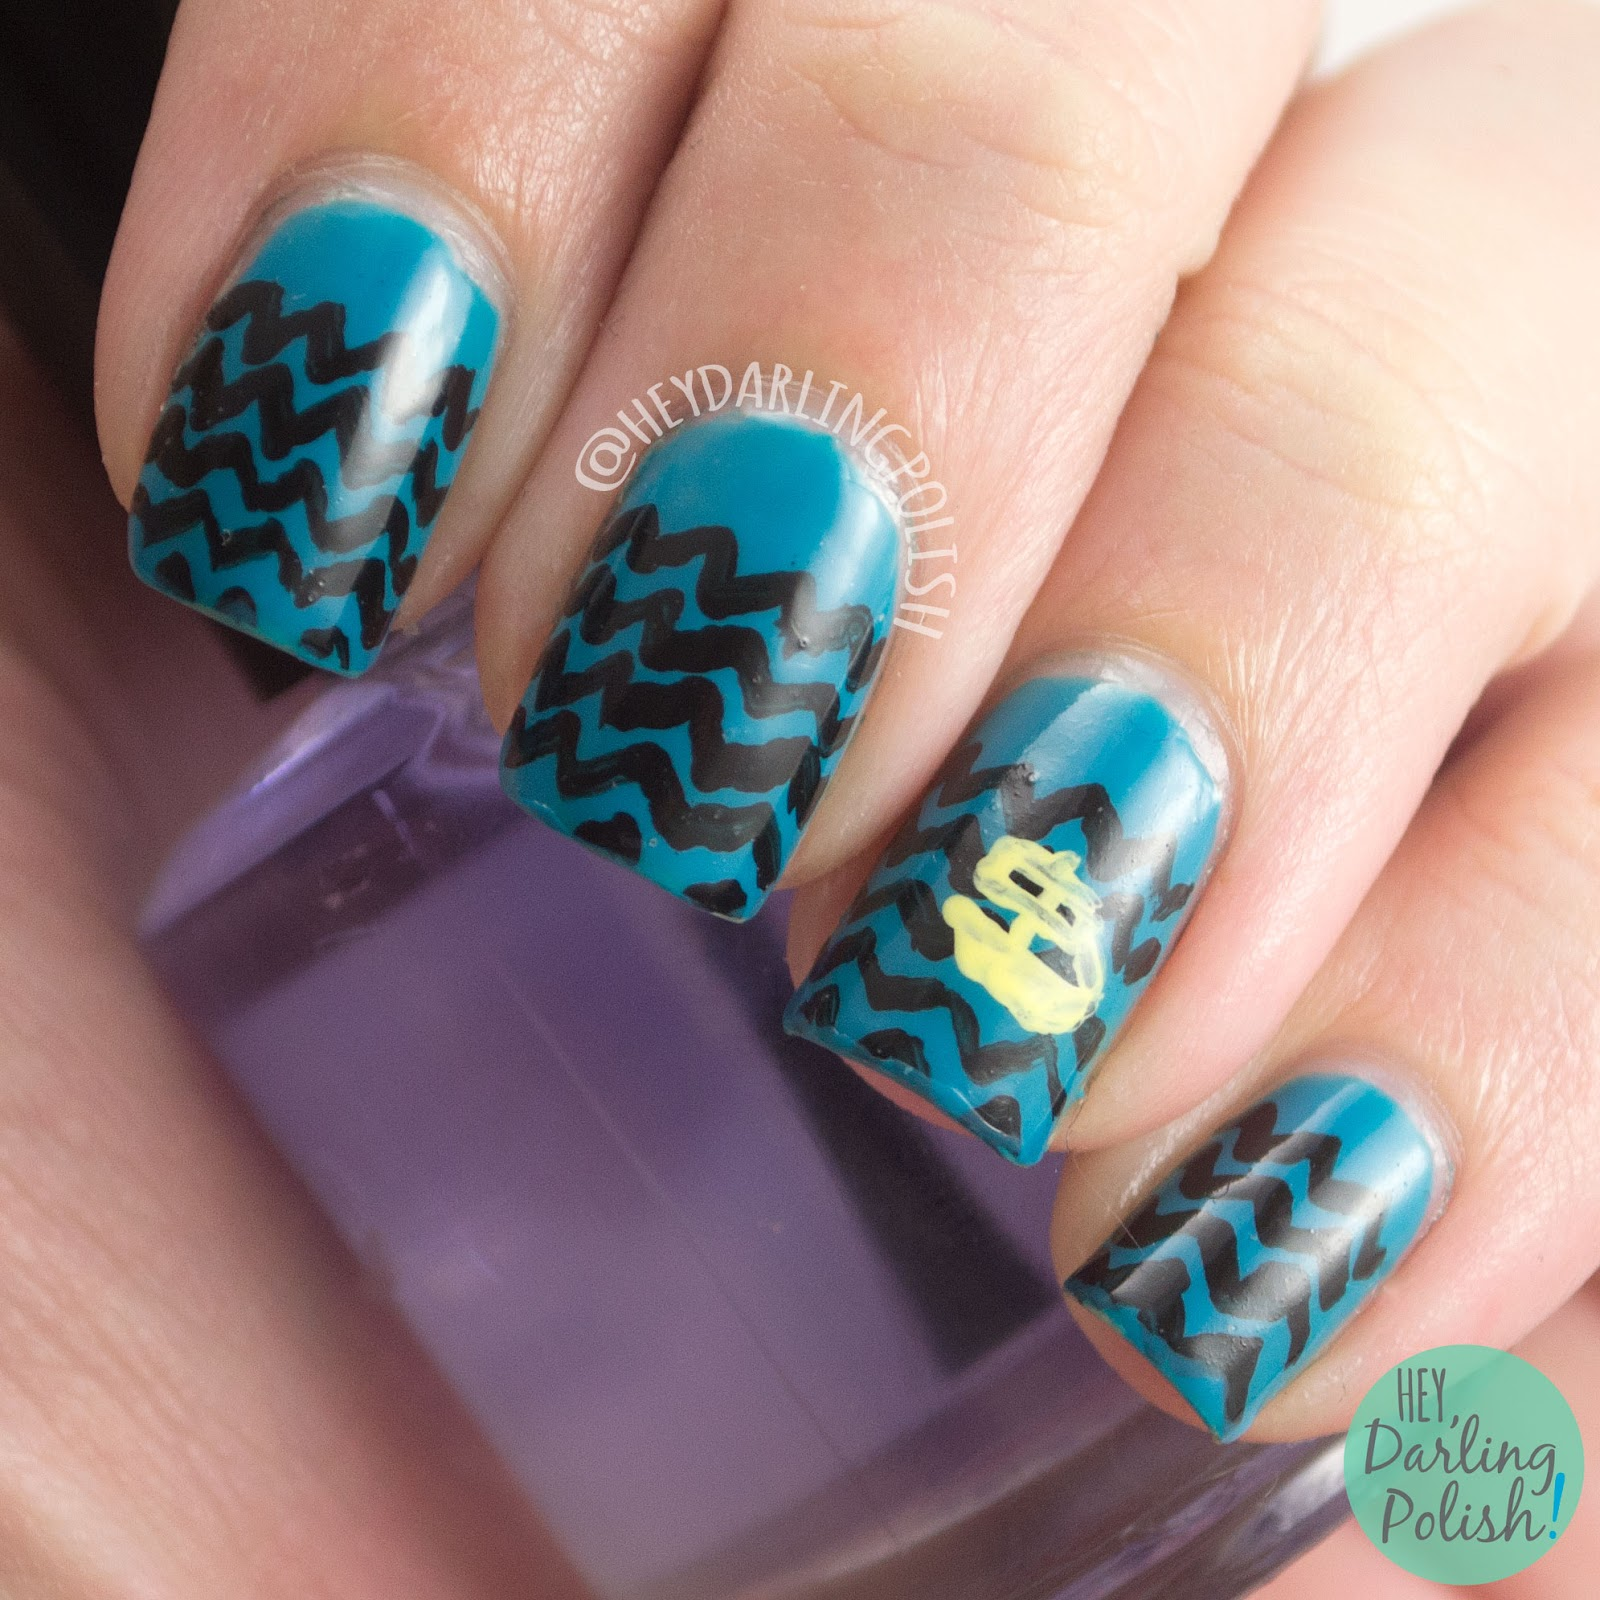 nails, nail art, nail polish, hey darling polish, the odyssey of homer, waves, zig zags, the nail challenge collaborative